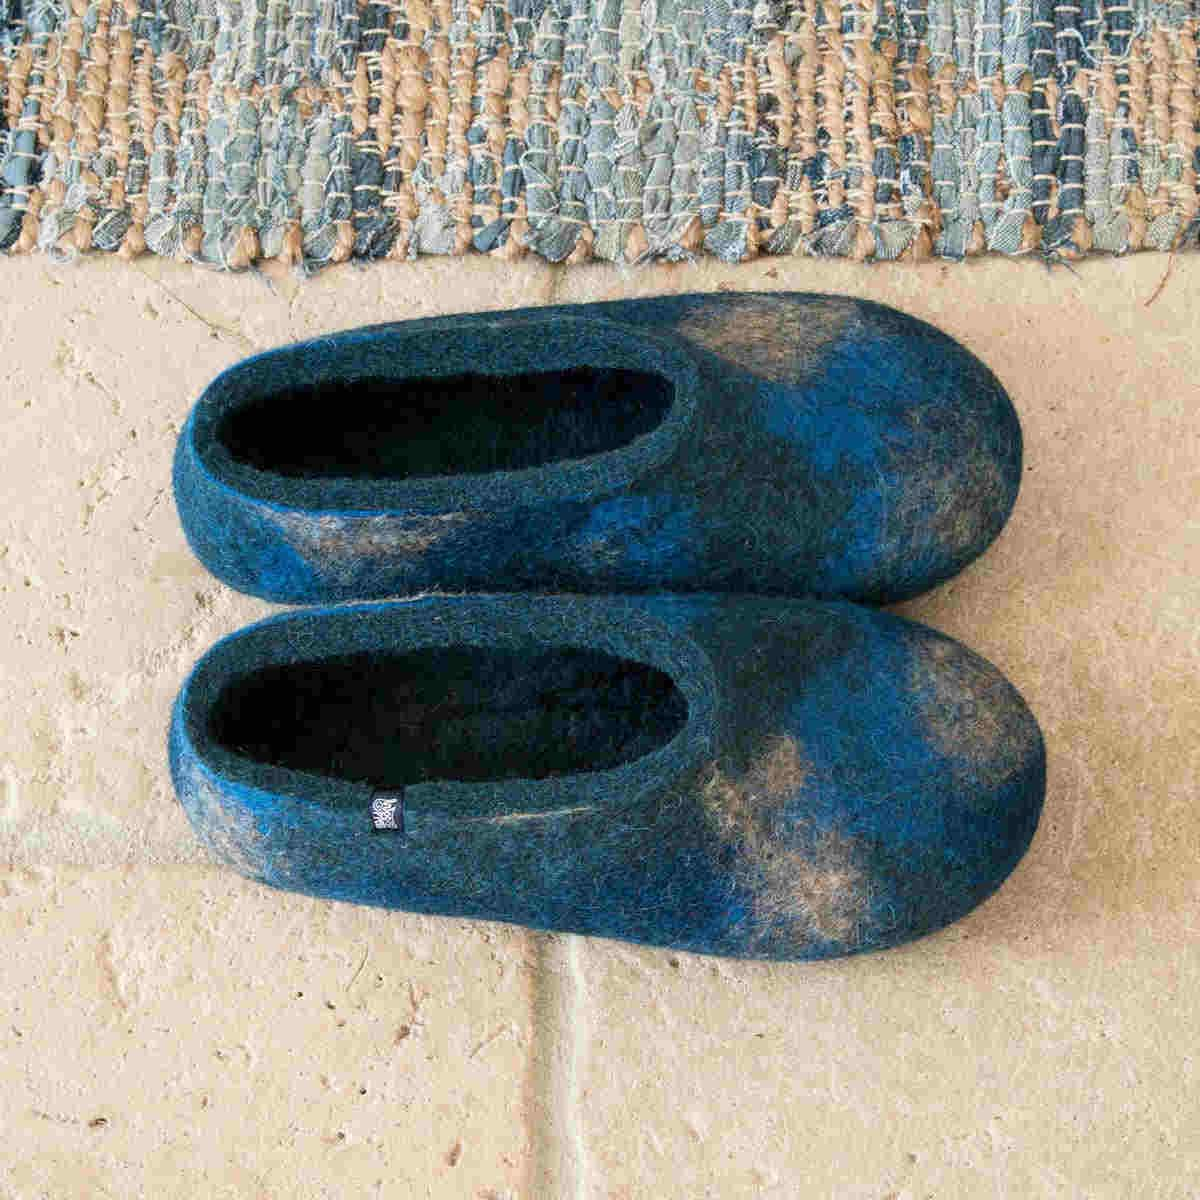 Handmade wool slippers in blue hues on the floor by Wooppers -